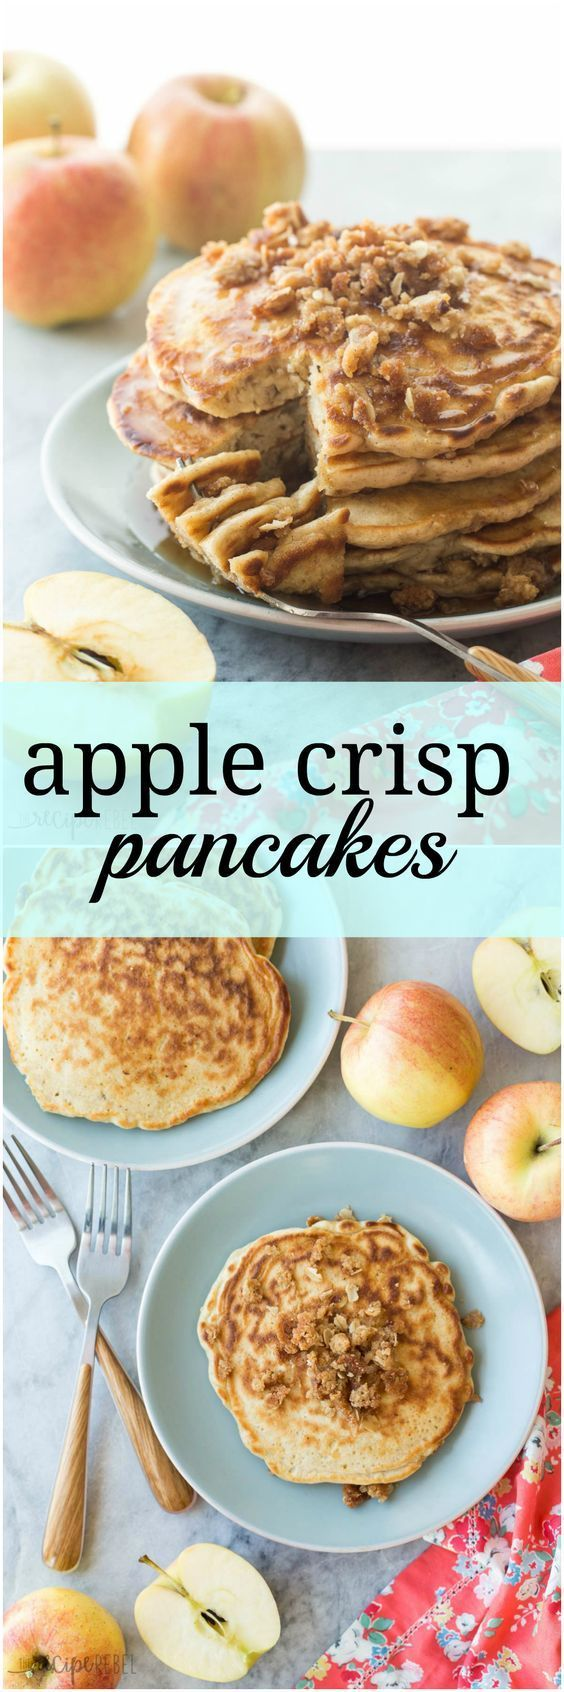 pancakes pancakes fluffy and more apple crisp pancakes apples cinnamon ...